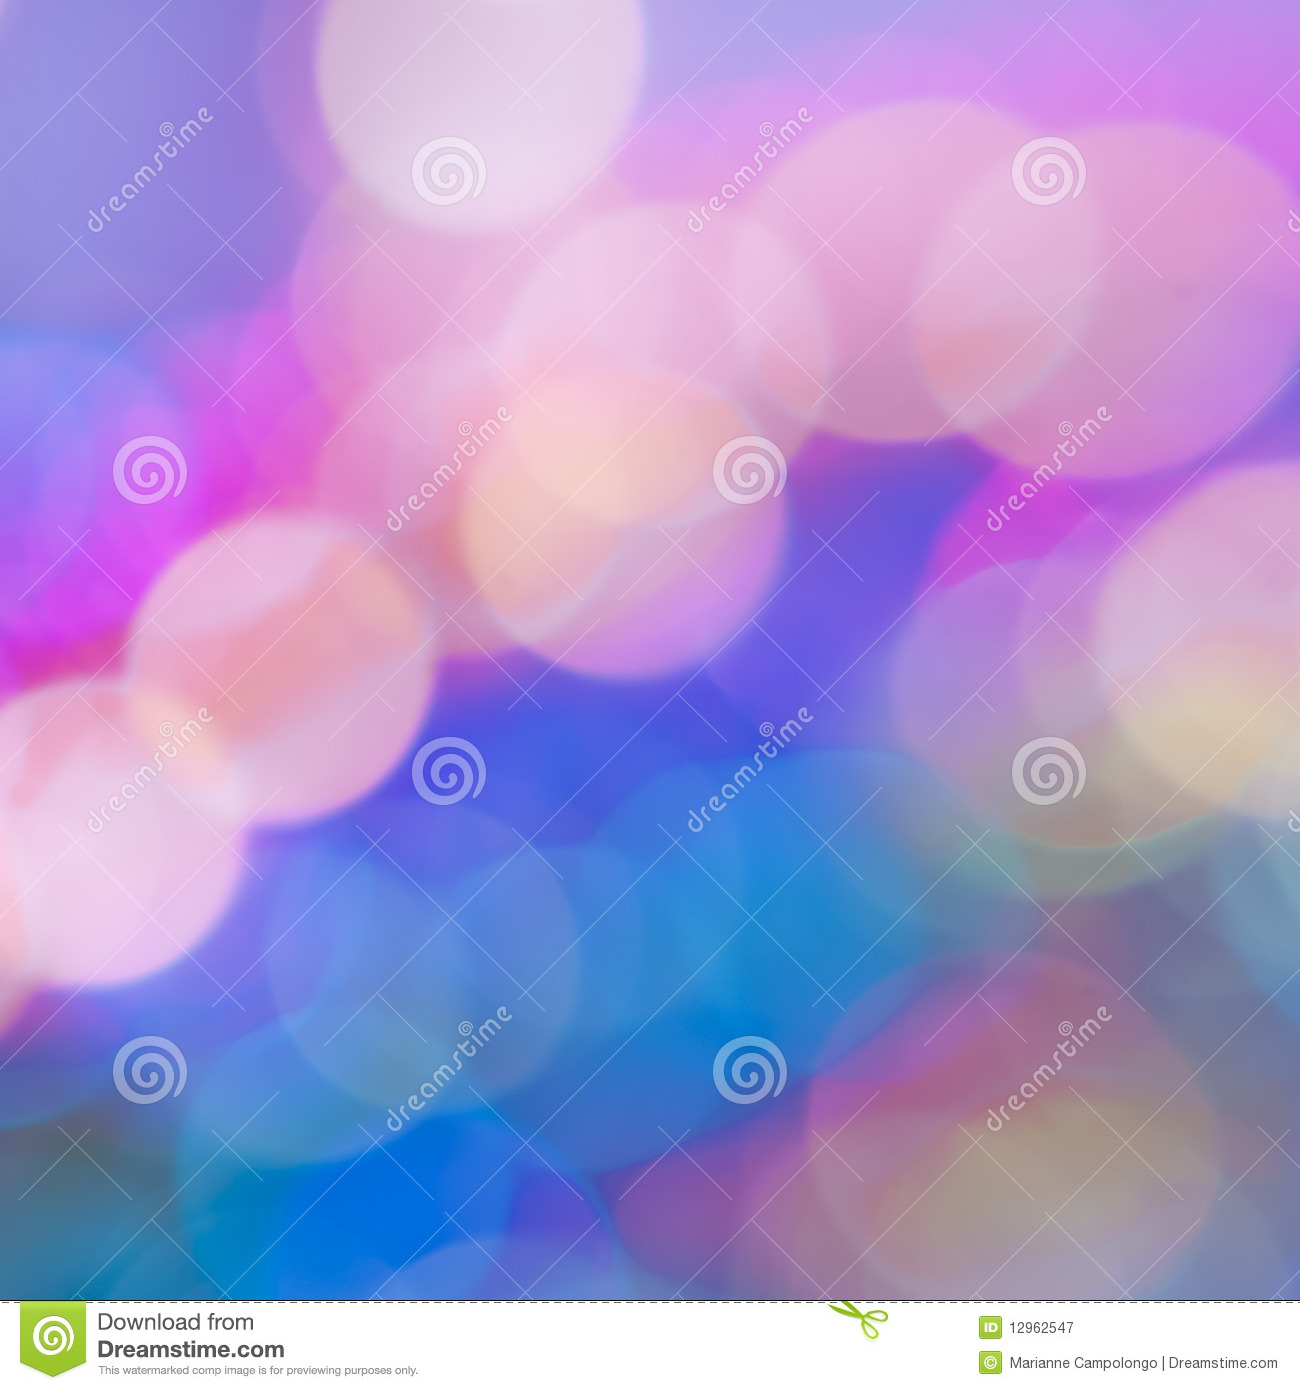 Colorful abstract background Light Colourful Backgrounds